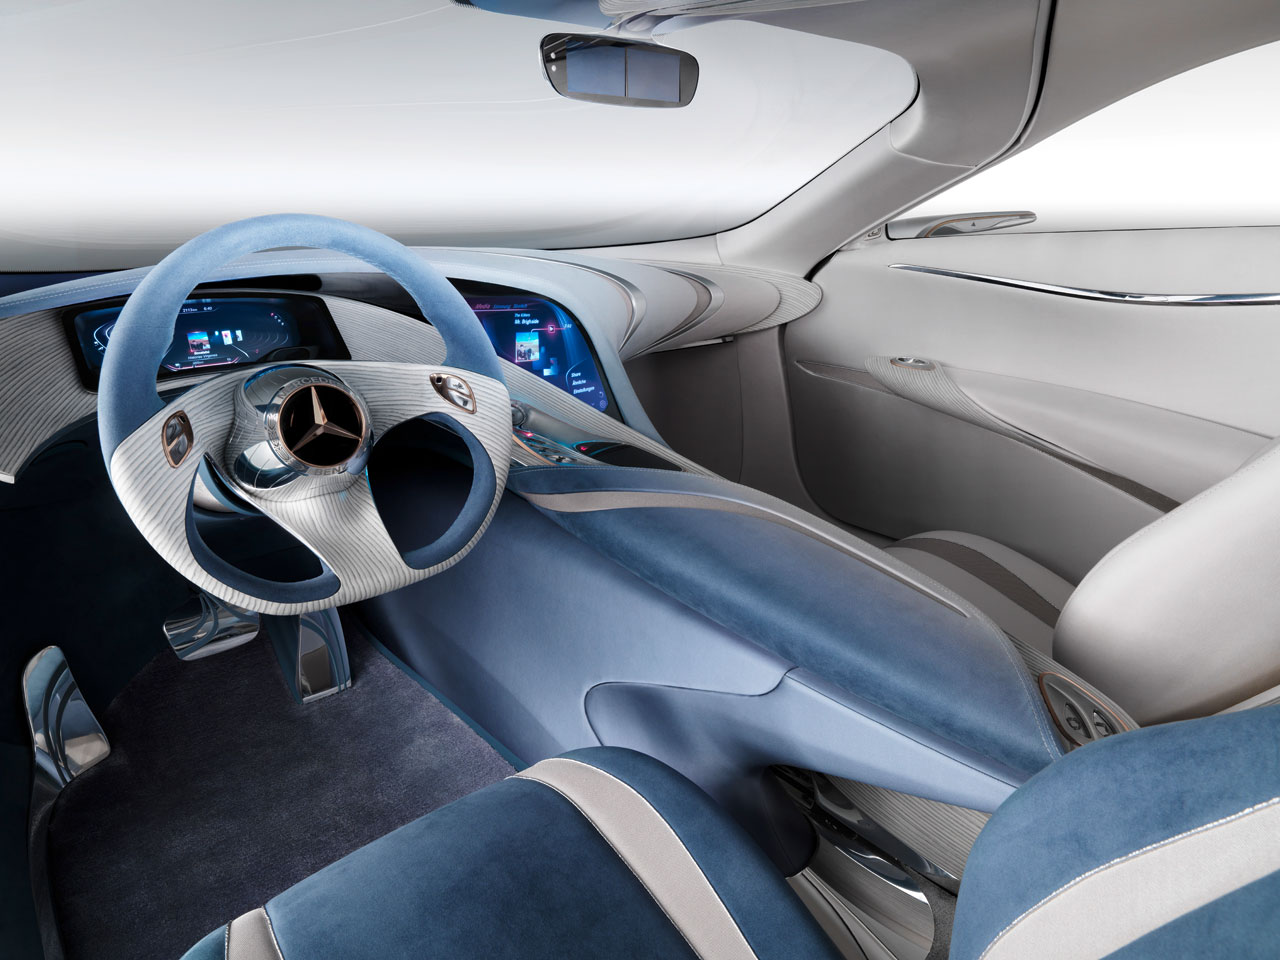 Mercedes benz f 125 concept car body design - Car interior design ...